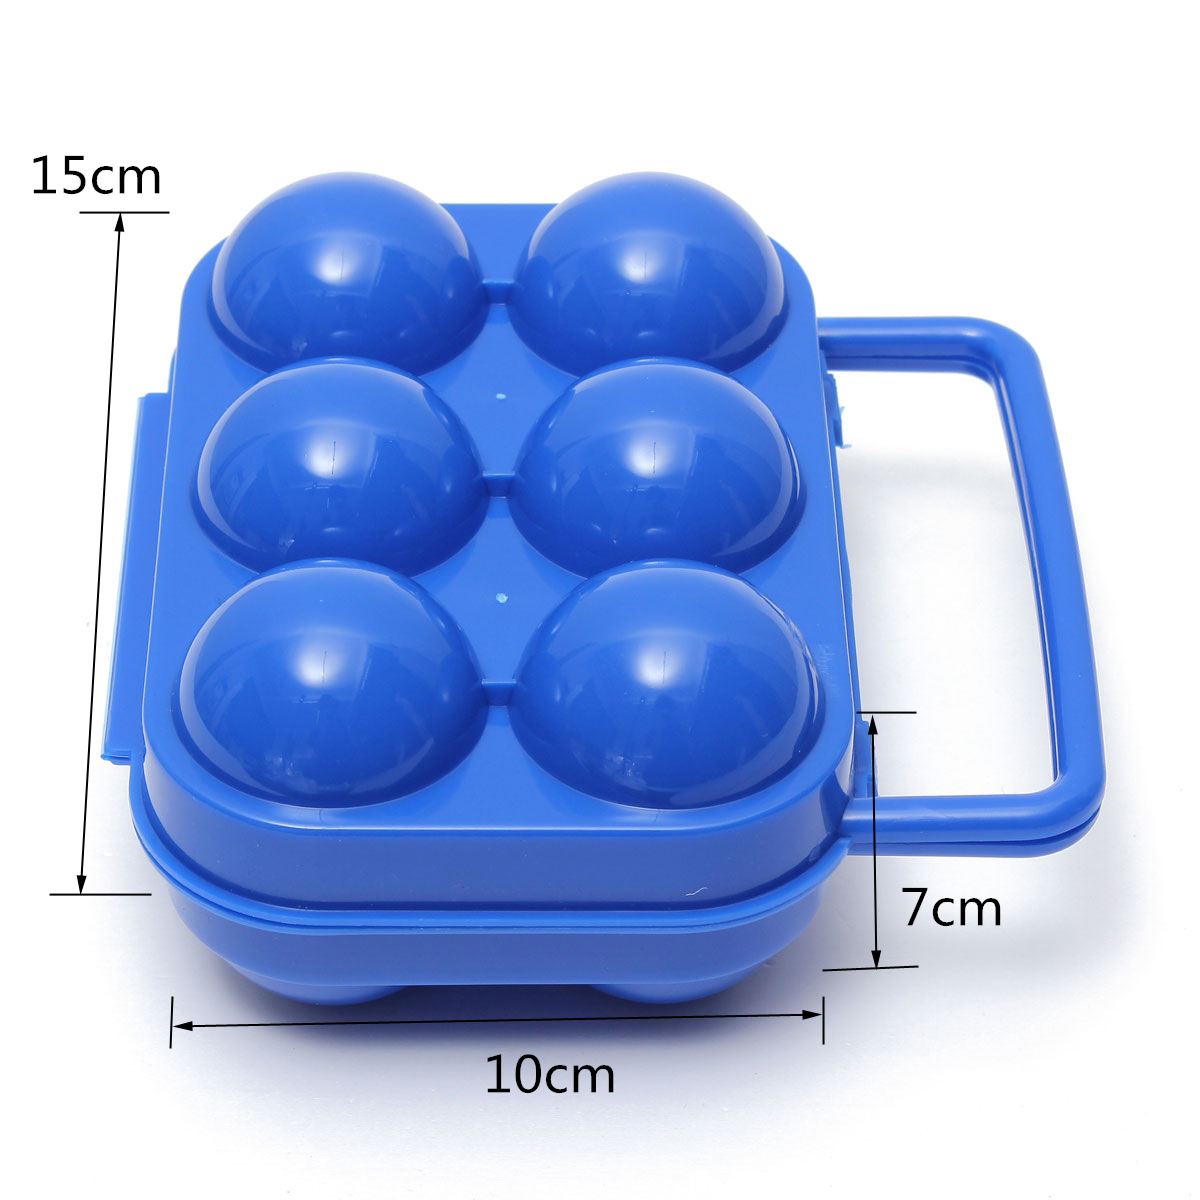 2/6/12 Eggs Box Plastic Carry Holder Container Storage  Folding Portable Camping